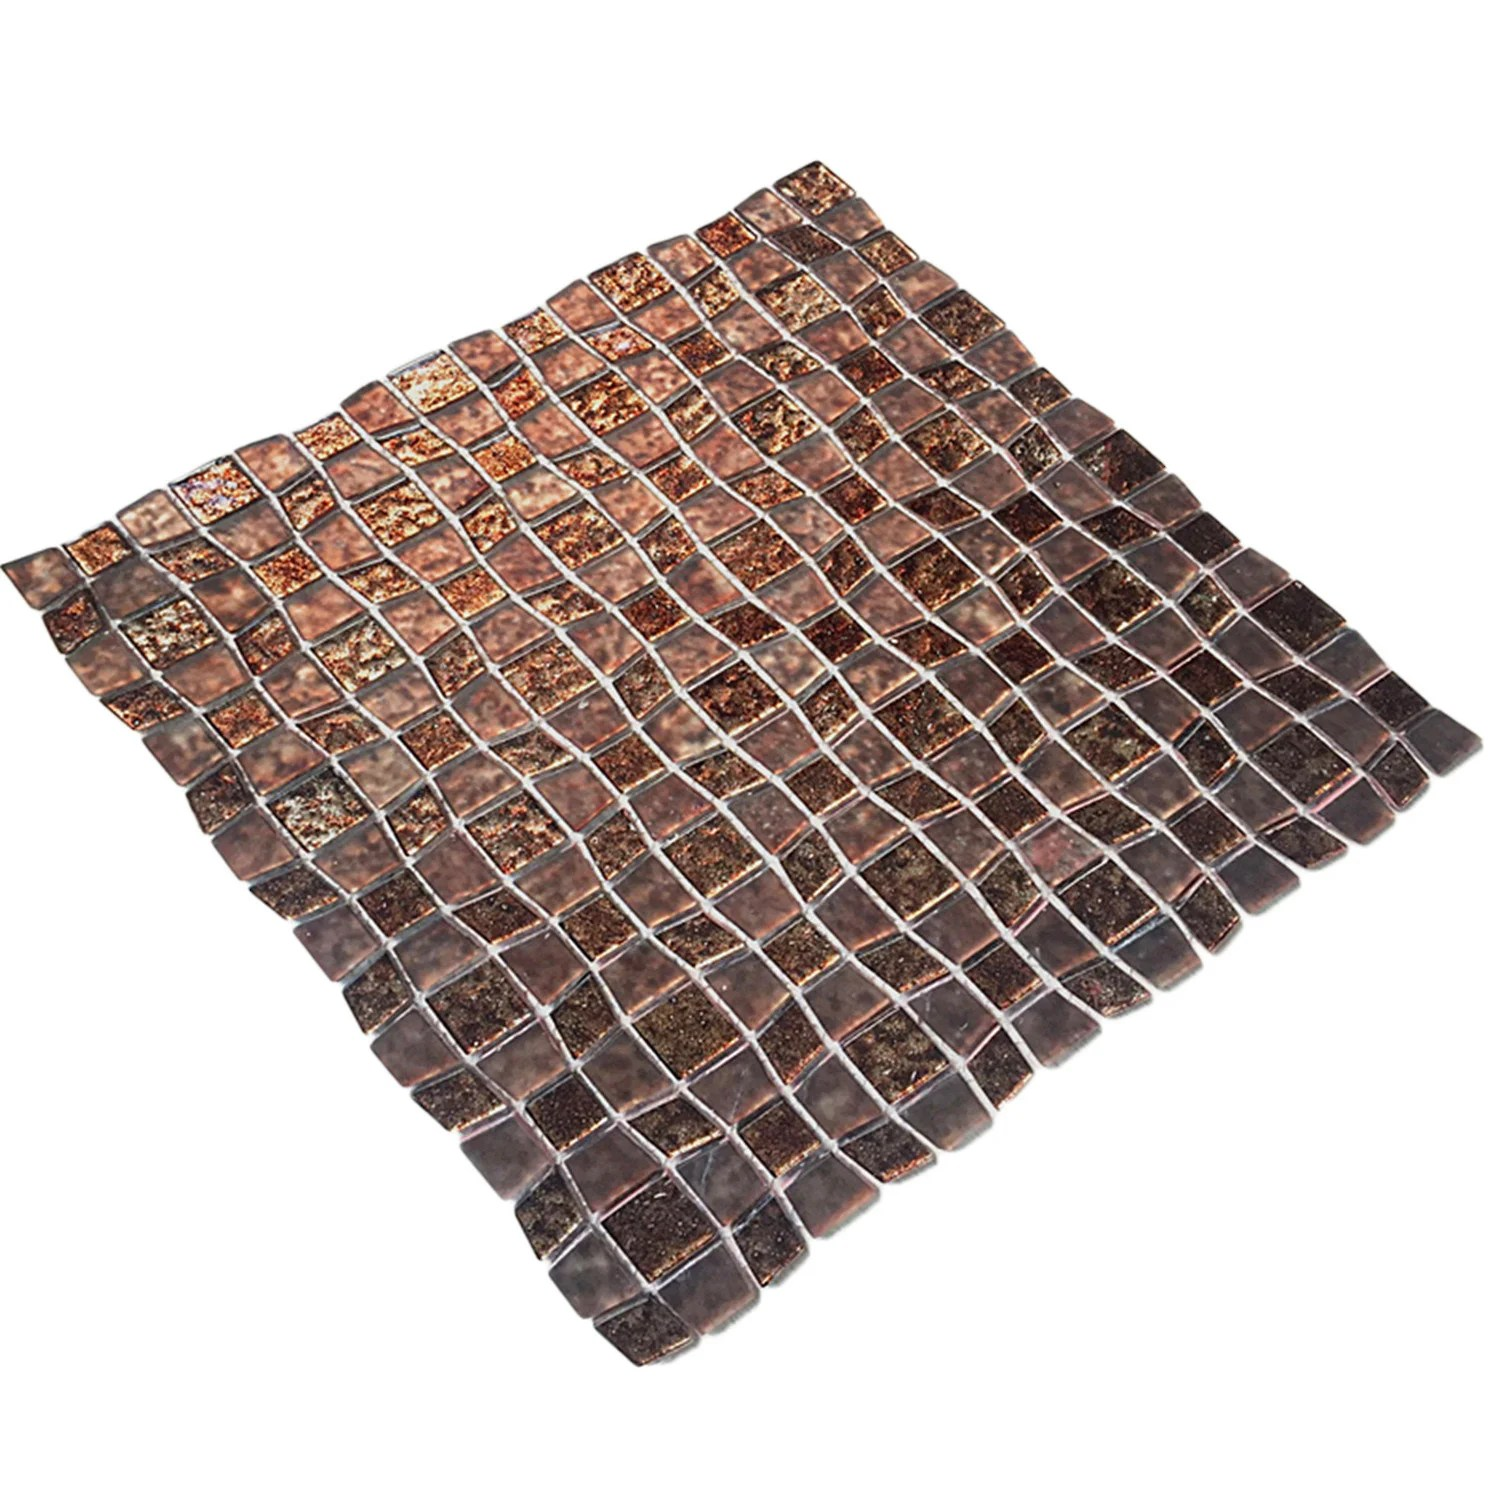 instant mosaic peel and stick 11 5 inch glass mosaic wall tile 6 sheets